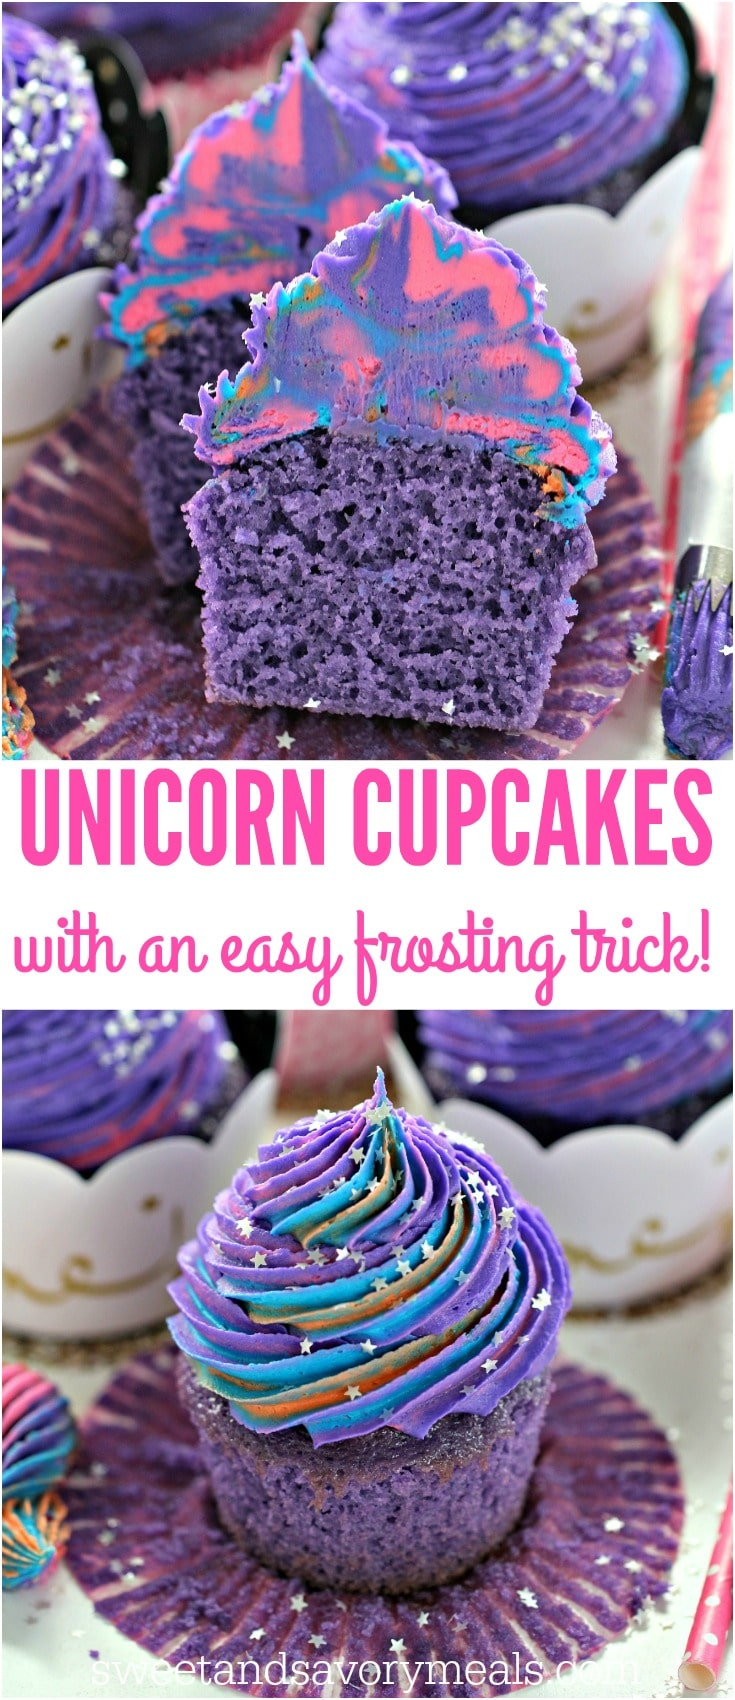 Unicorn Cupcakes are astonishingly pretty, delicious and also easy to make. Perfect for themed parties, these are meant to be a hit with everyone.